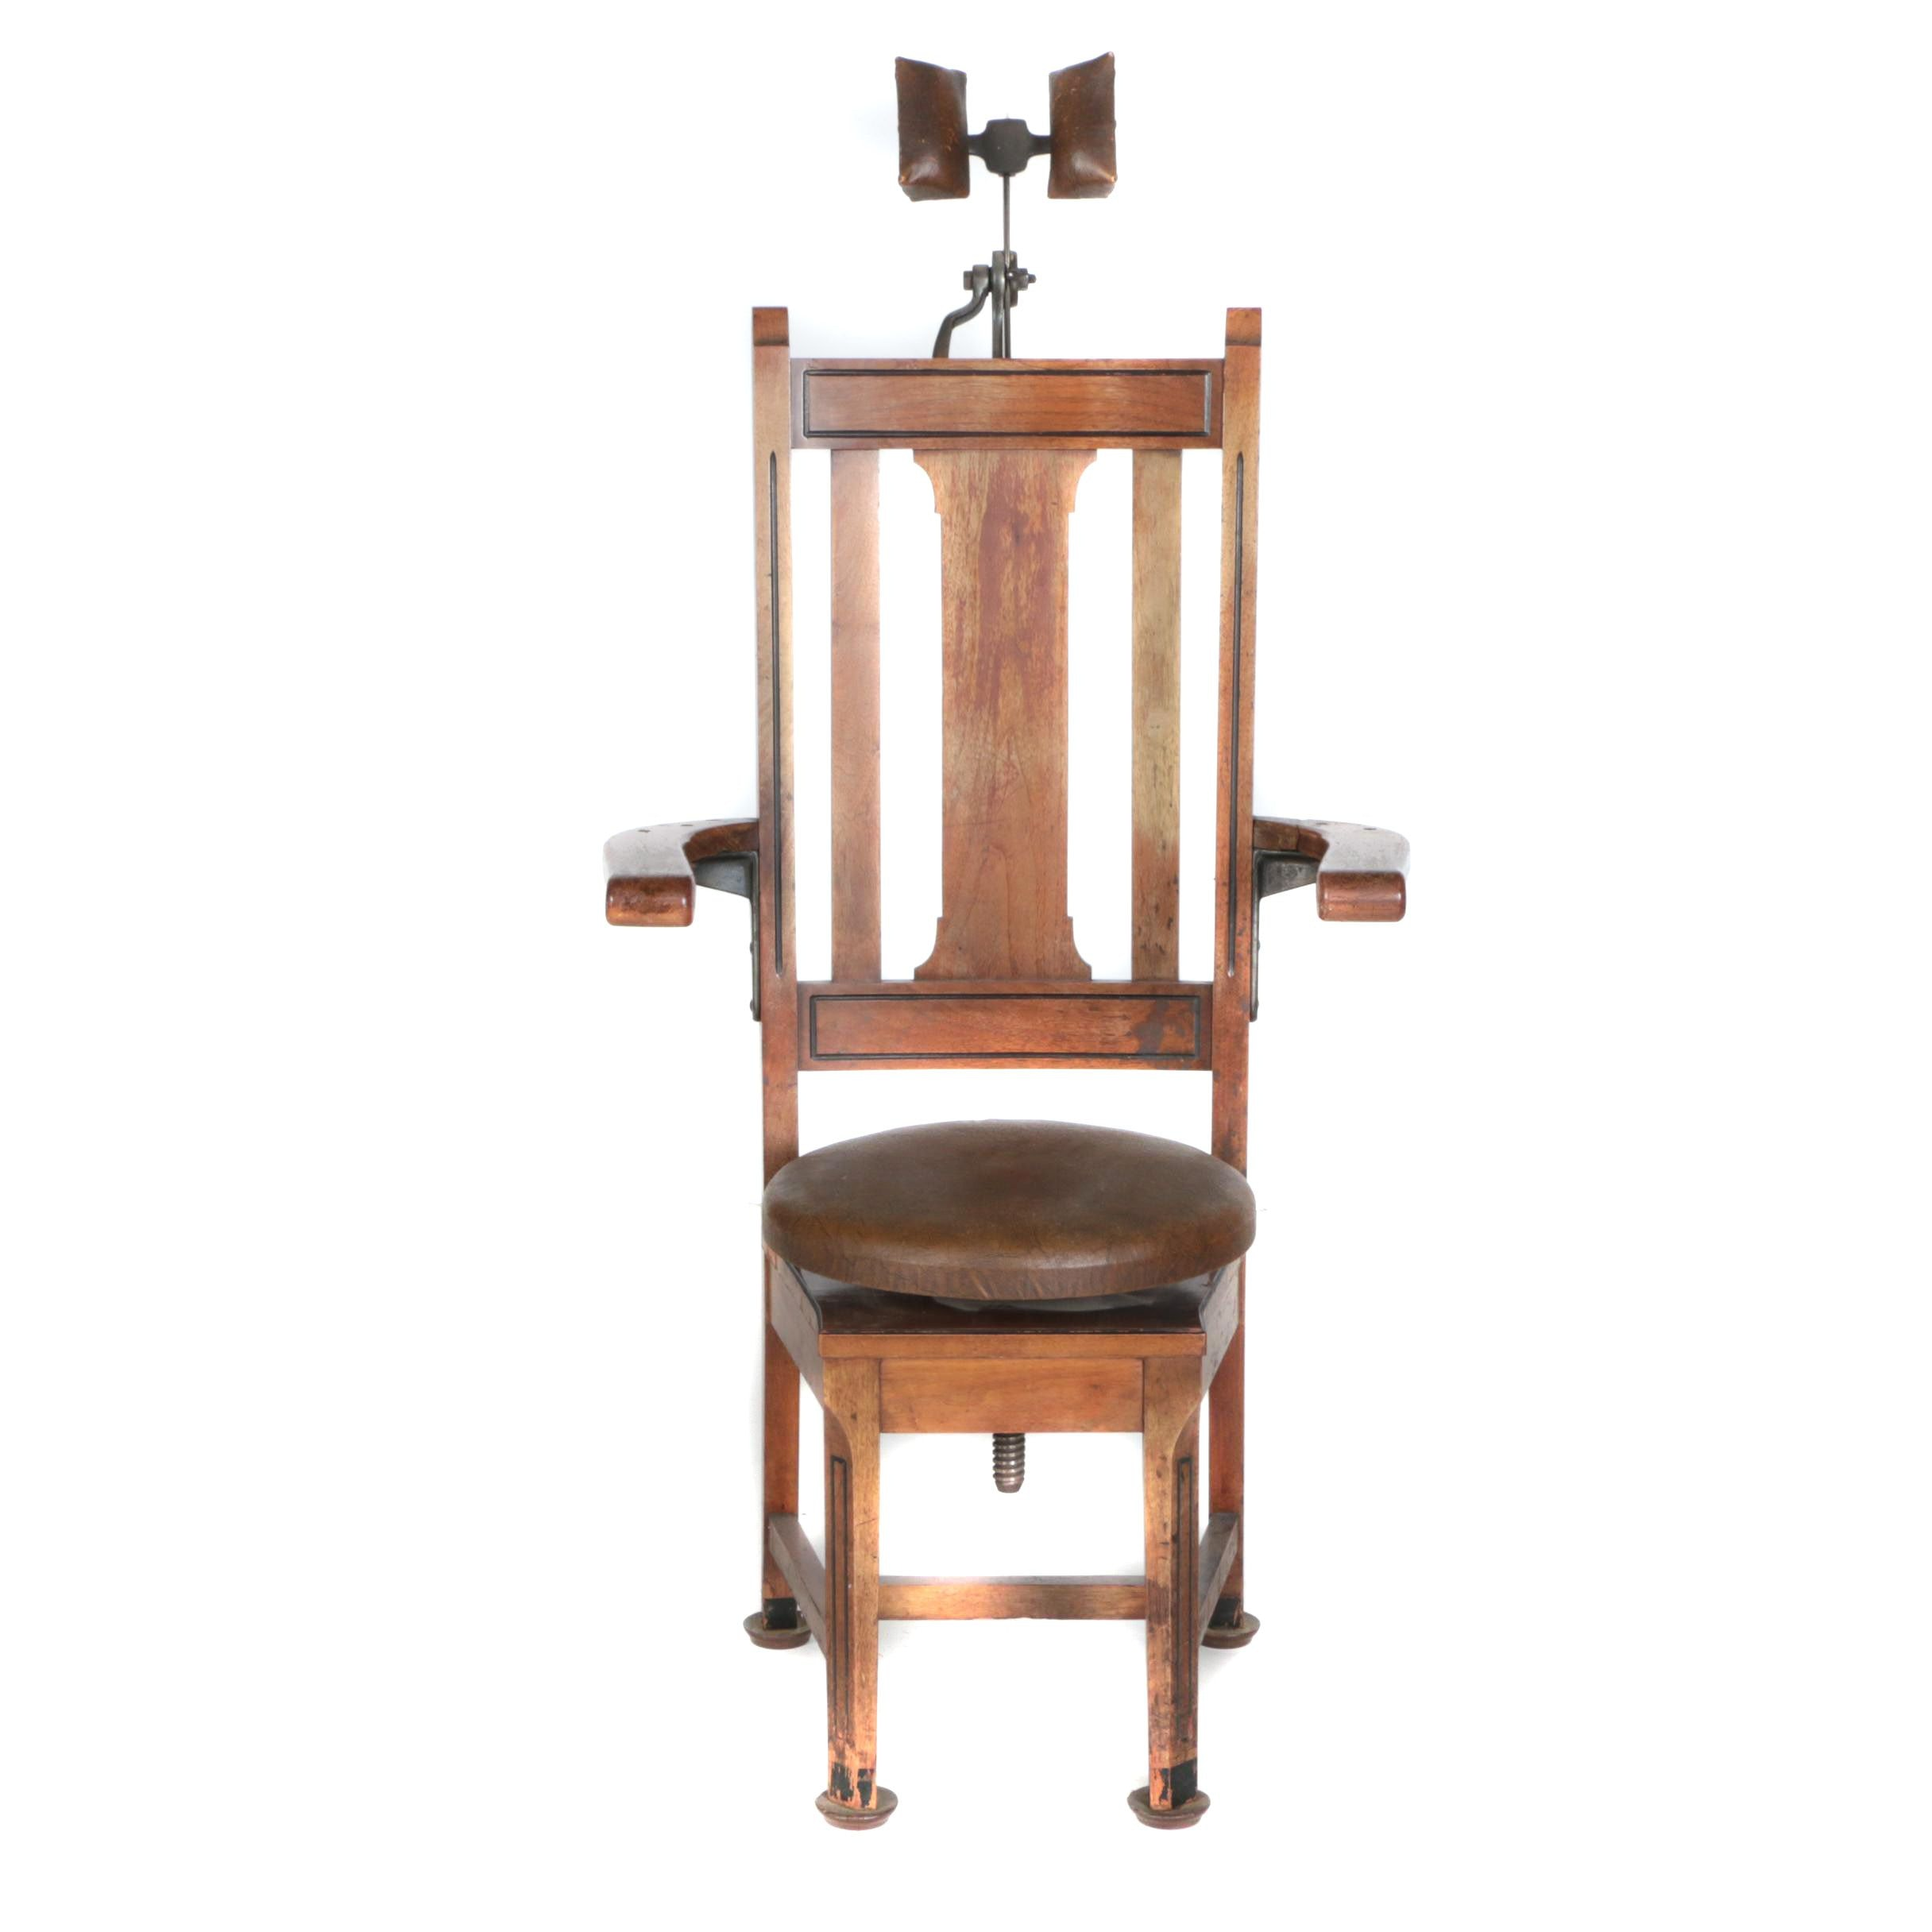 Wooden Dentist's Chair by W.D. Allison of Indianapolis